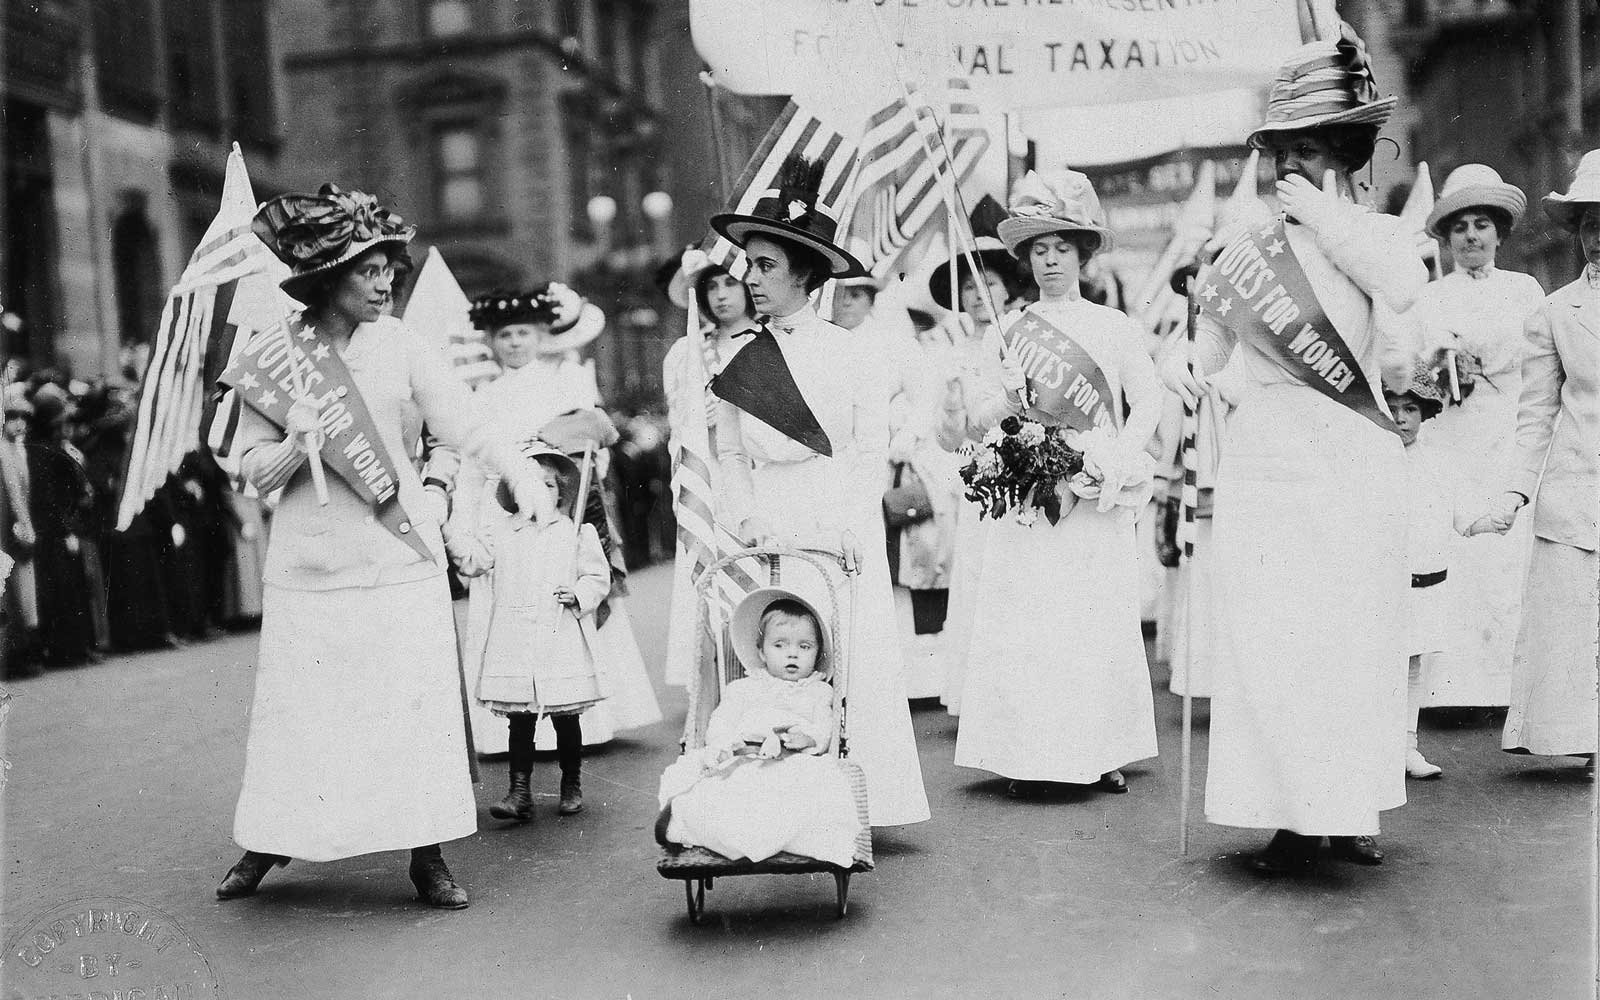 suffrage-marches-01-bw-COLORIZE0317.jpg